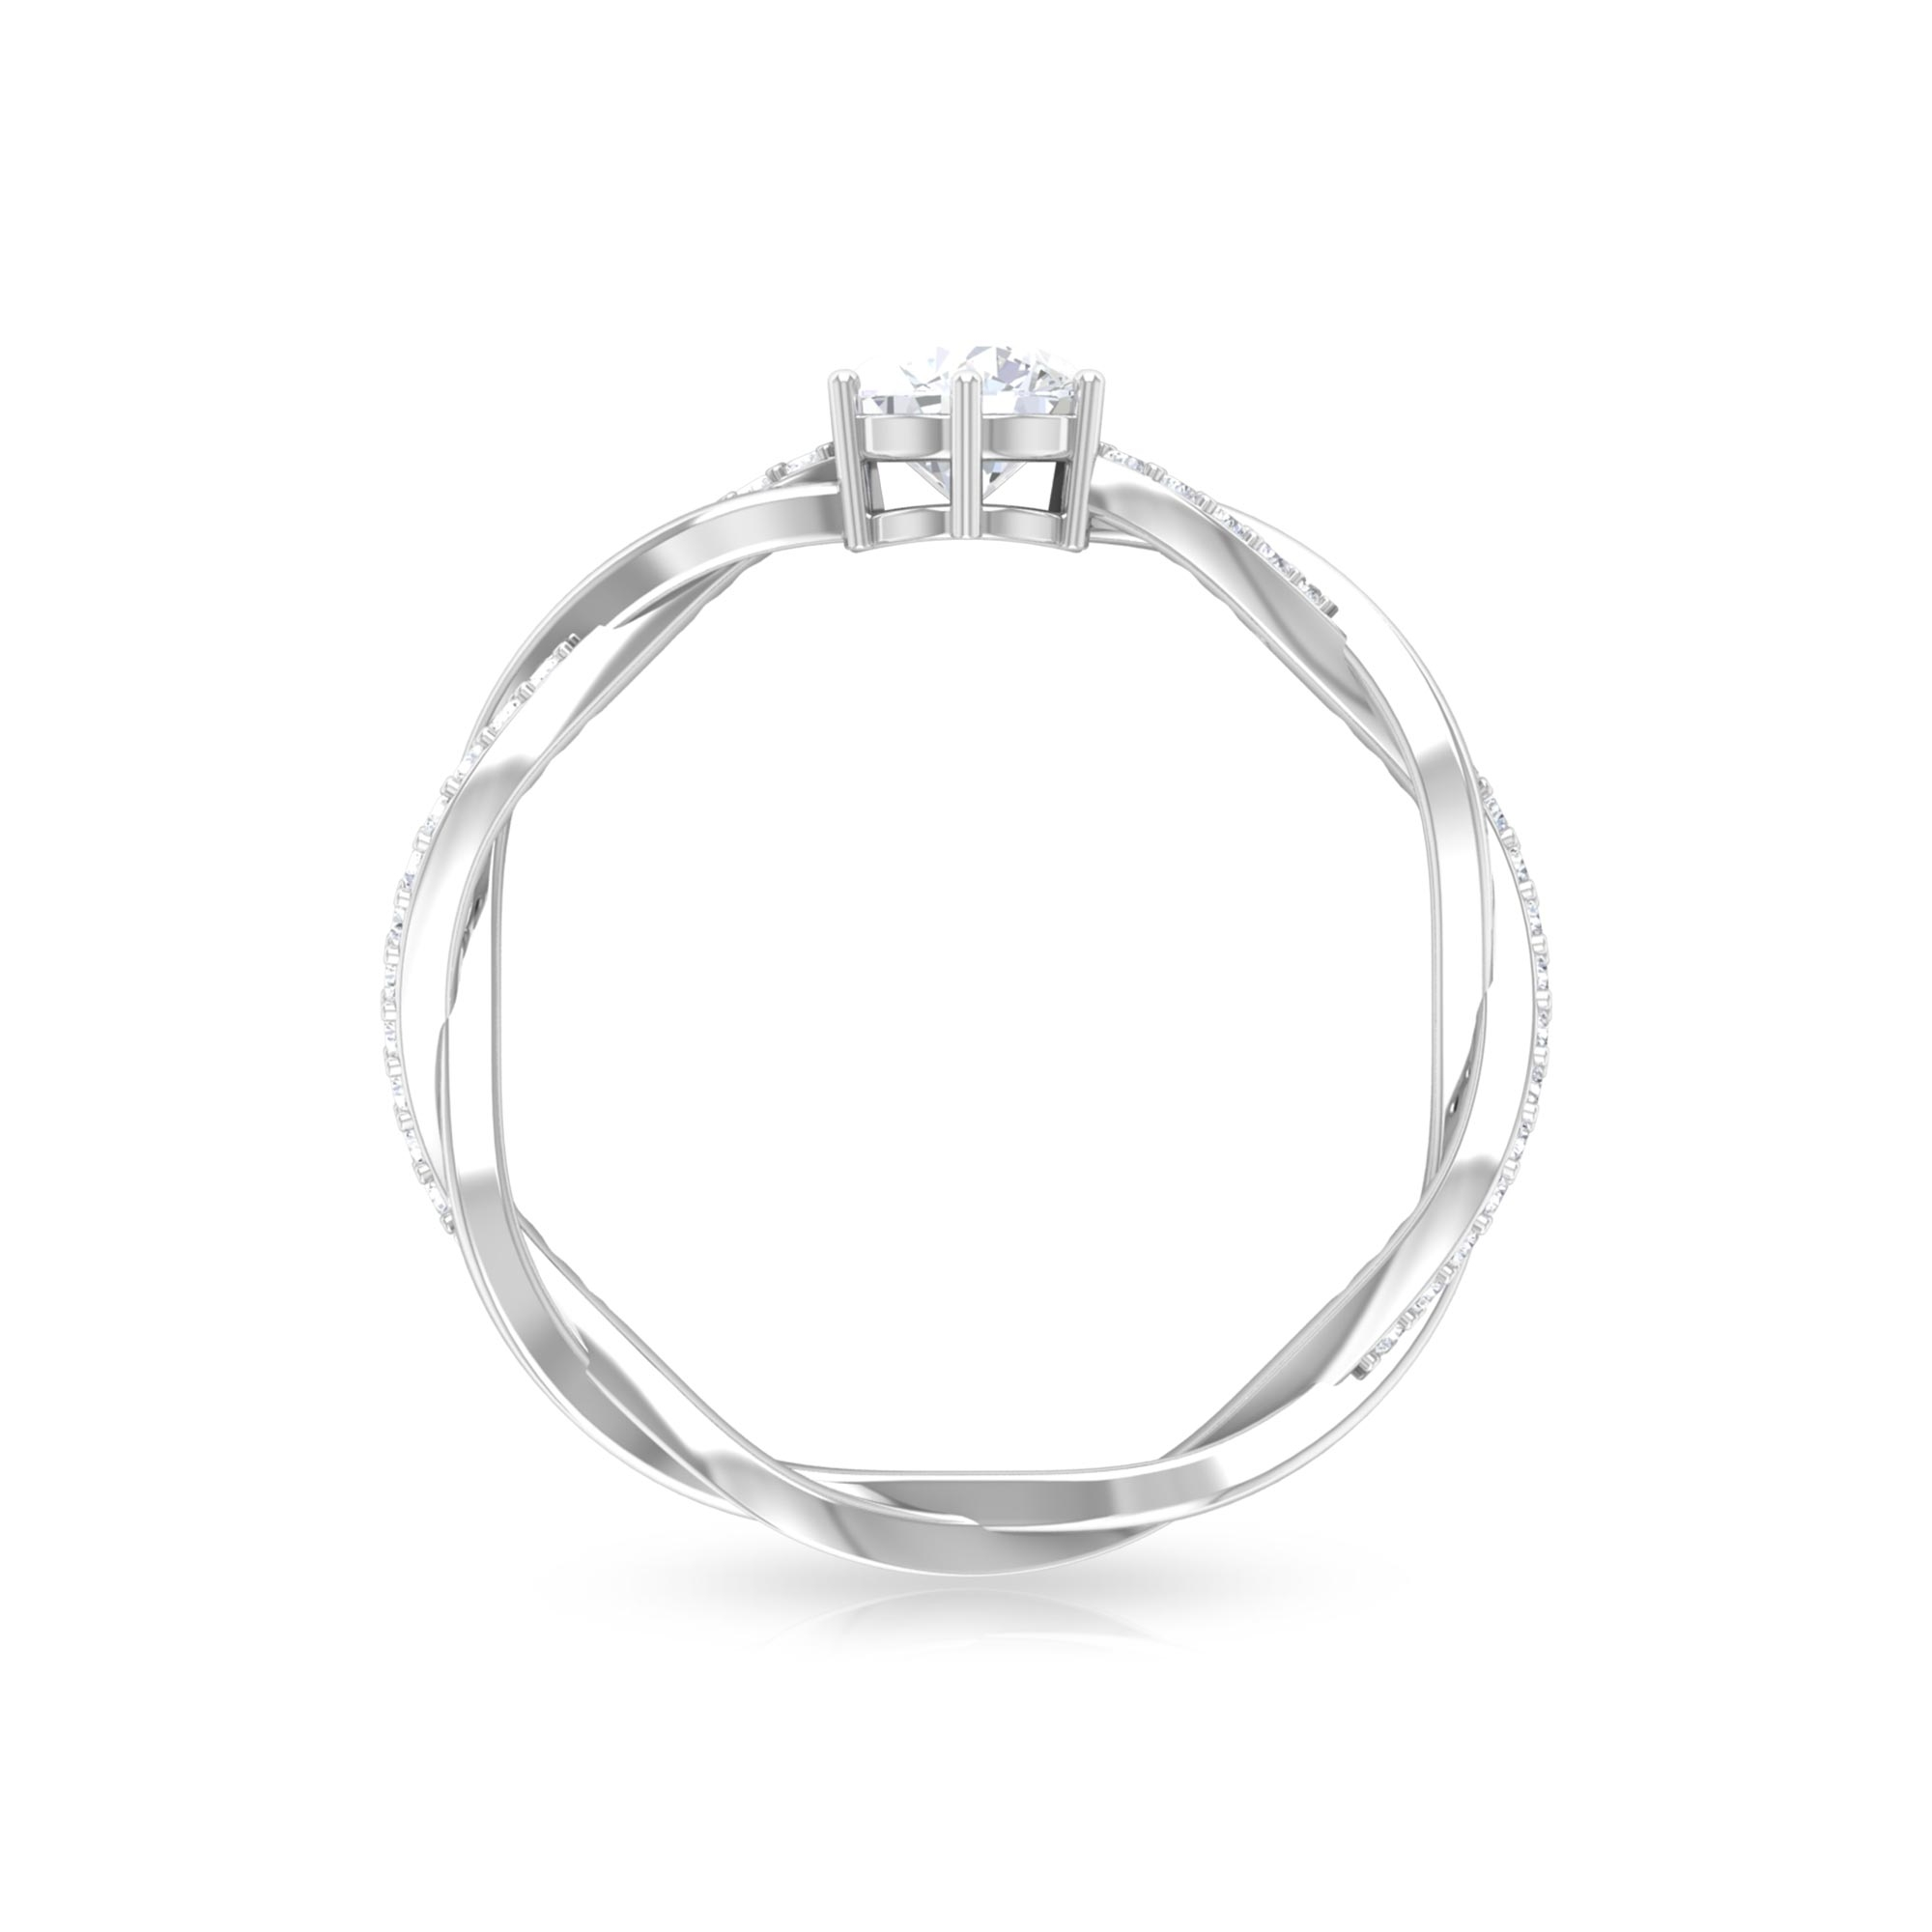 5 MM Round Cut Diamond Solitaire Braided Ring in 6 Prong Set